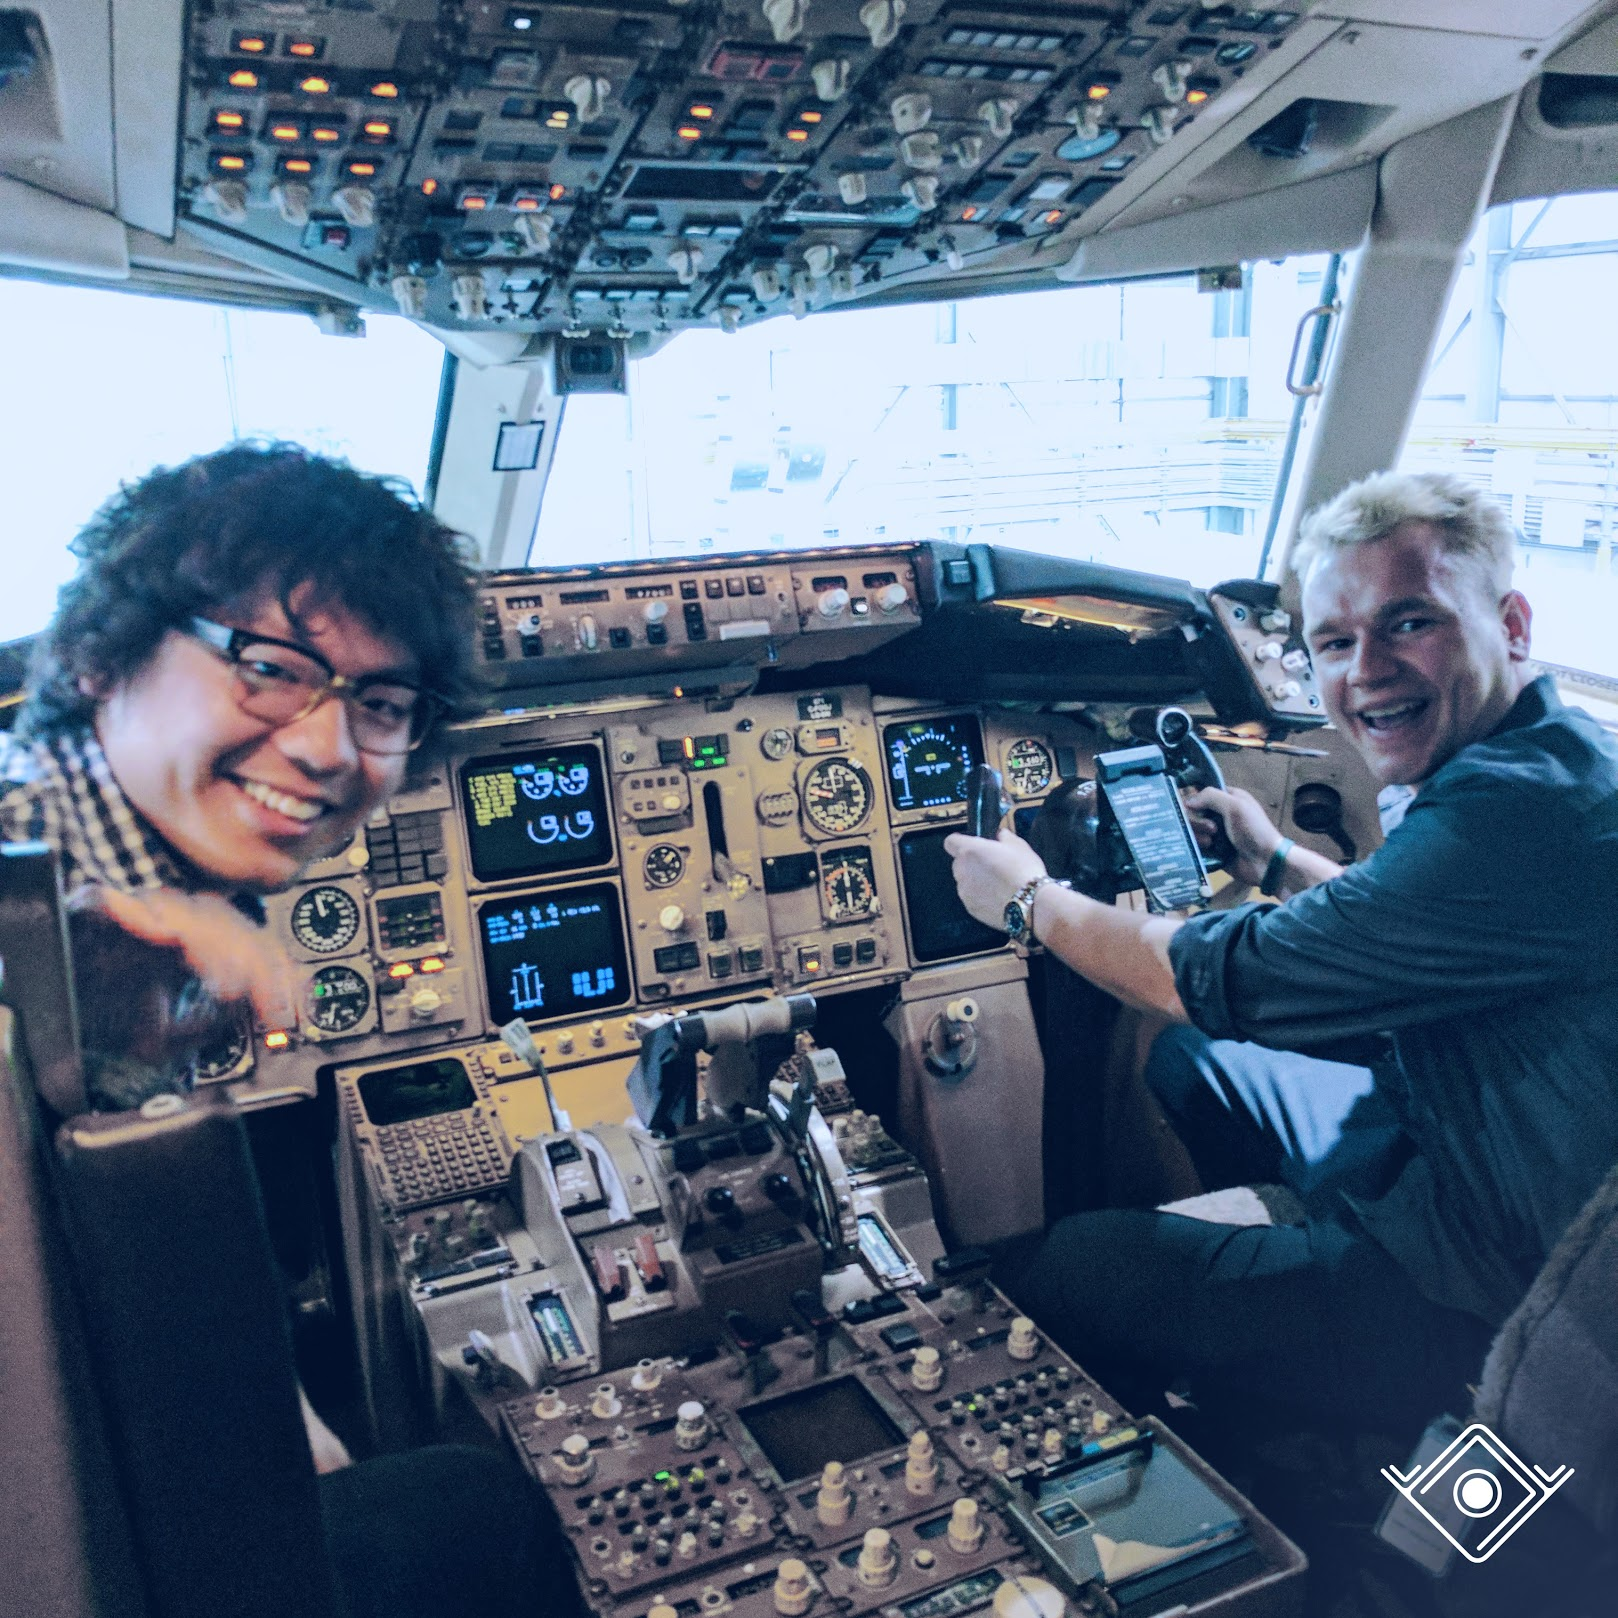 Pete and Rob in an airplane